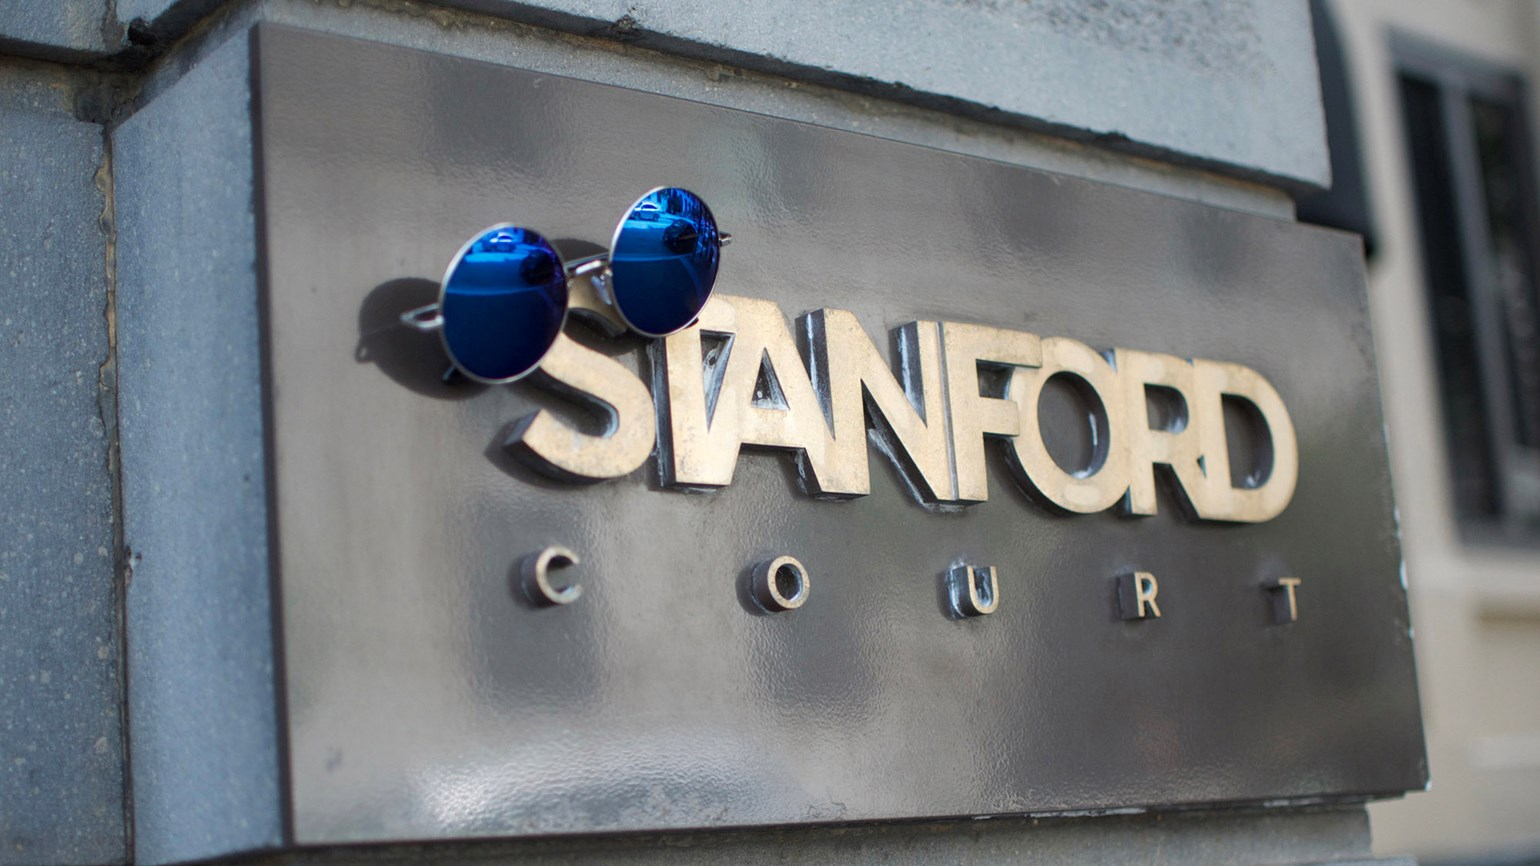 Stanford Court in San Francisco offers 'Summer of Love' package